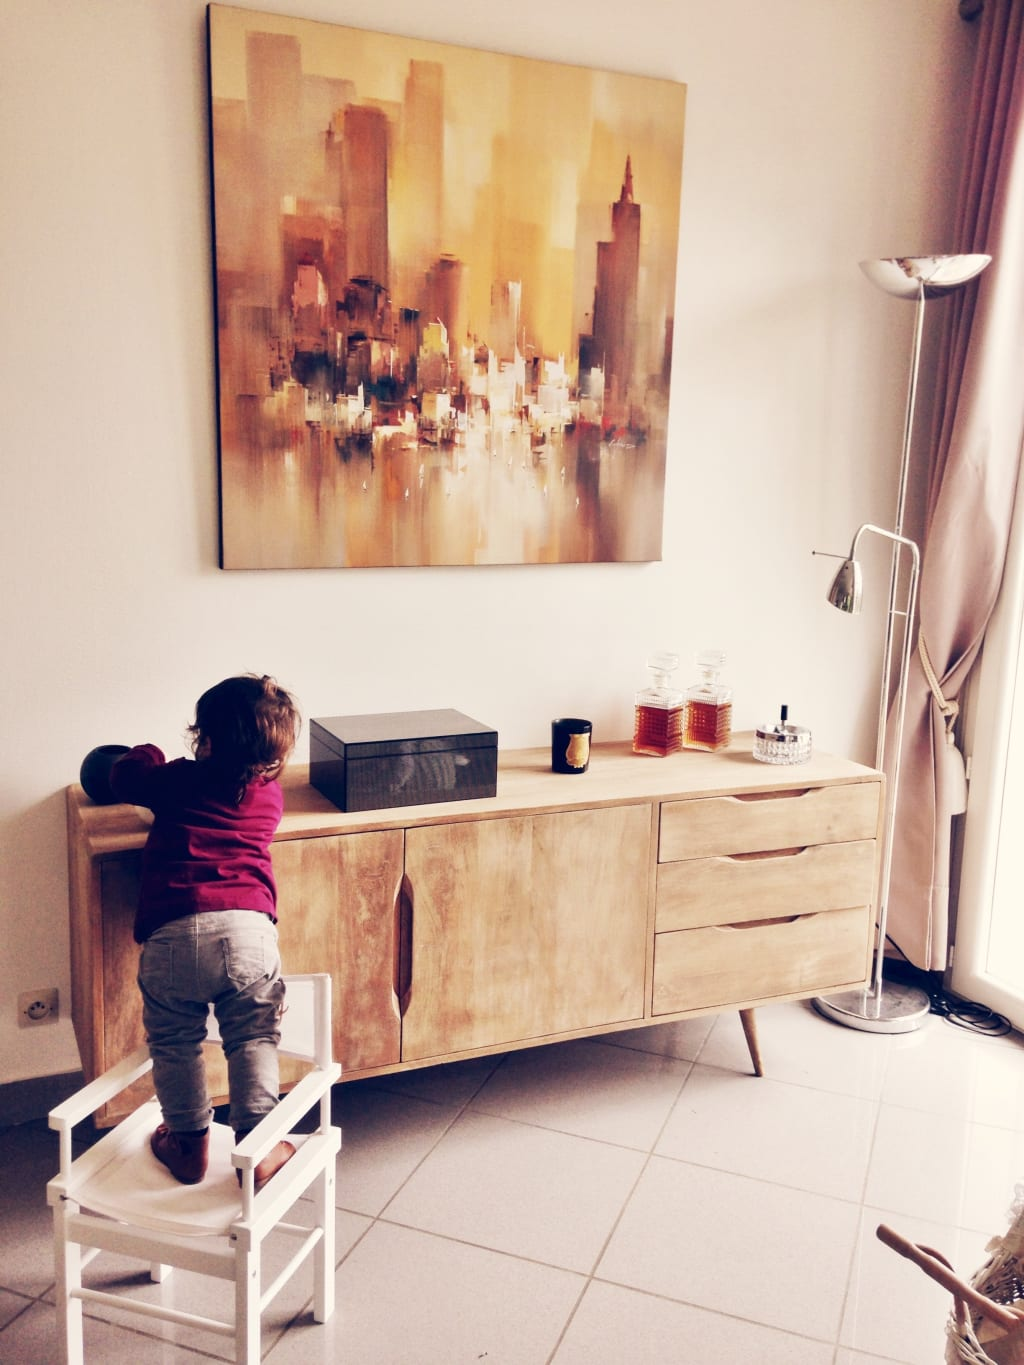 What Every Home Needs for Kids